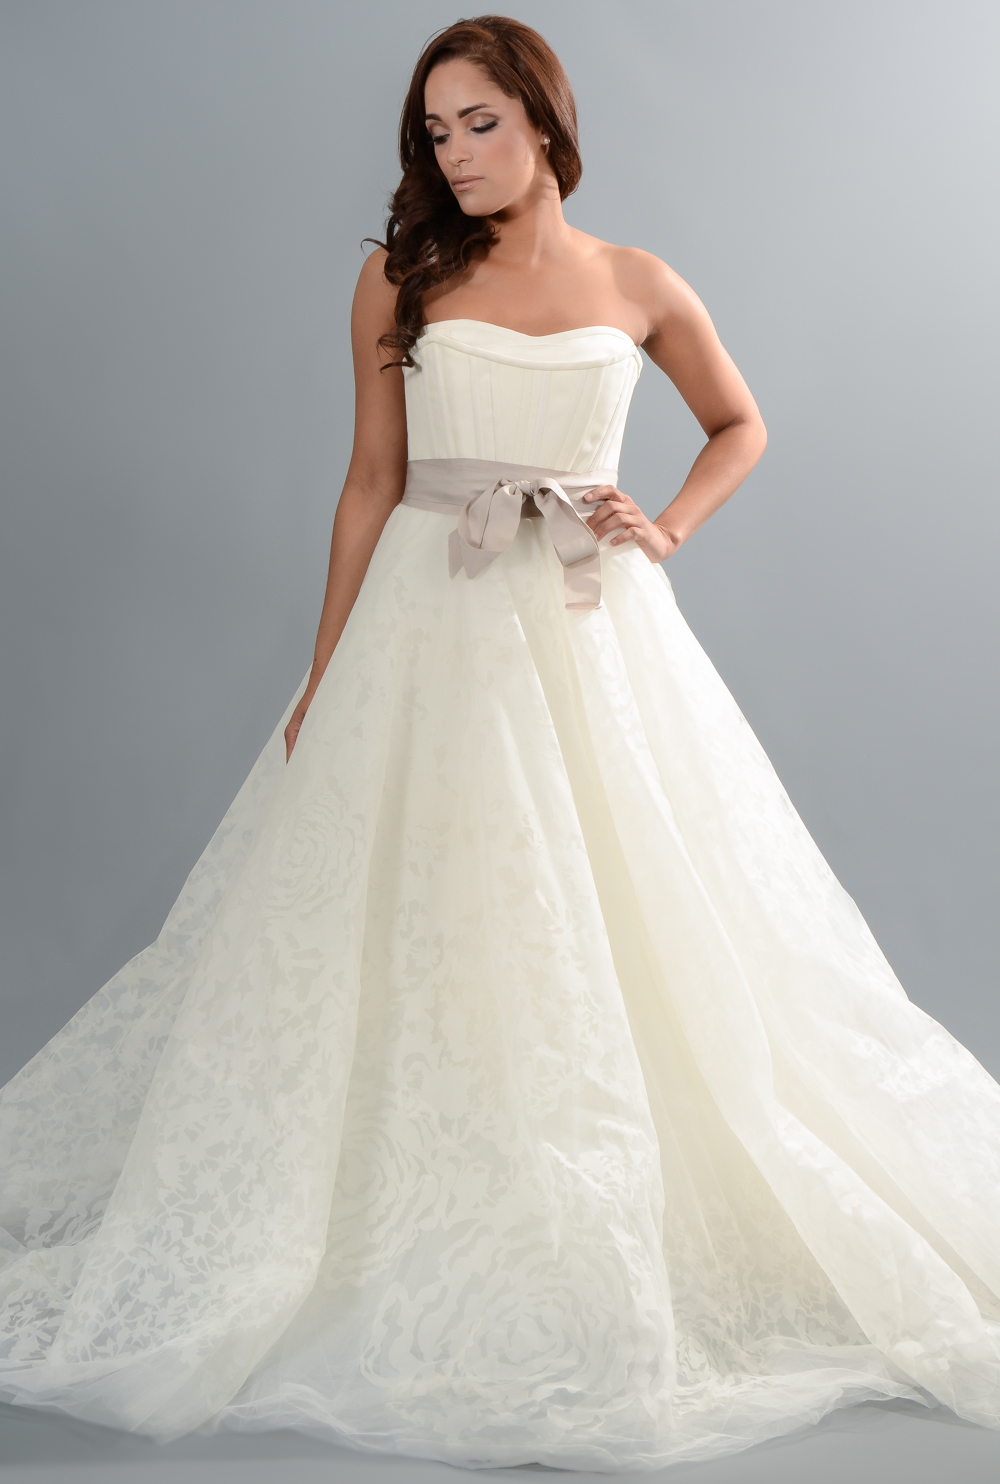 Boston wedding vendor spotlight vows bridal outlet for Discount wedding dresses boston